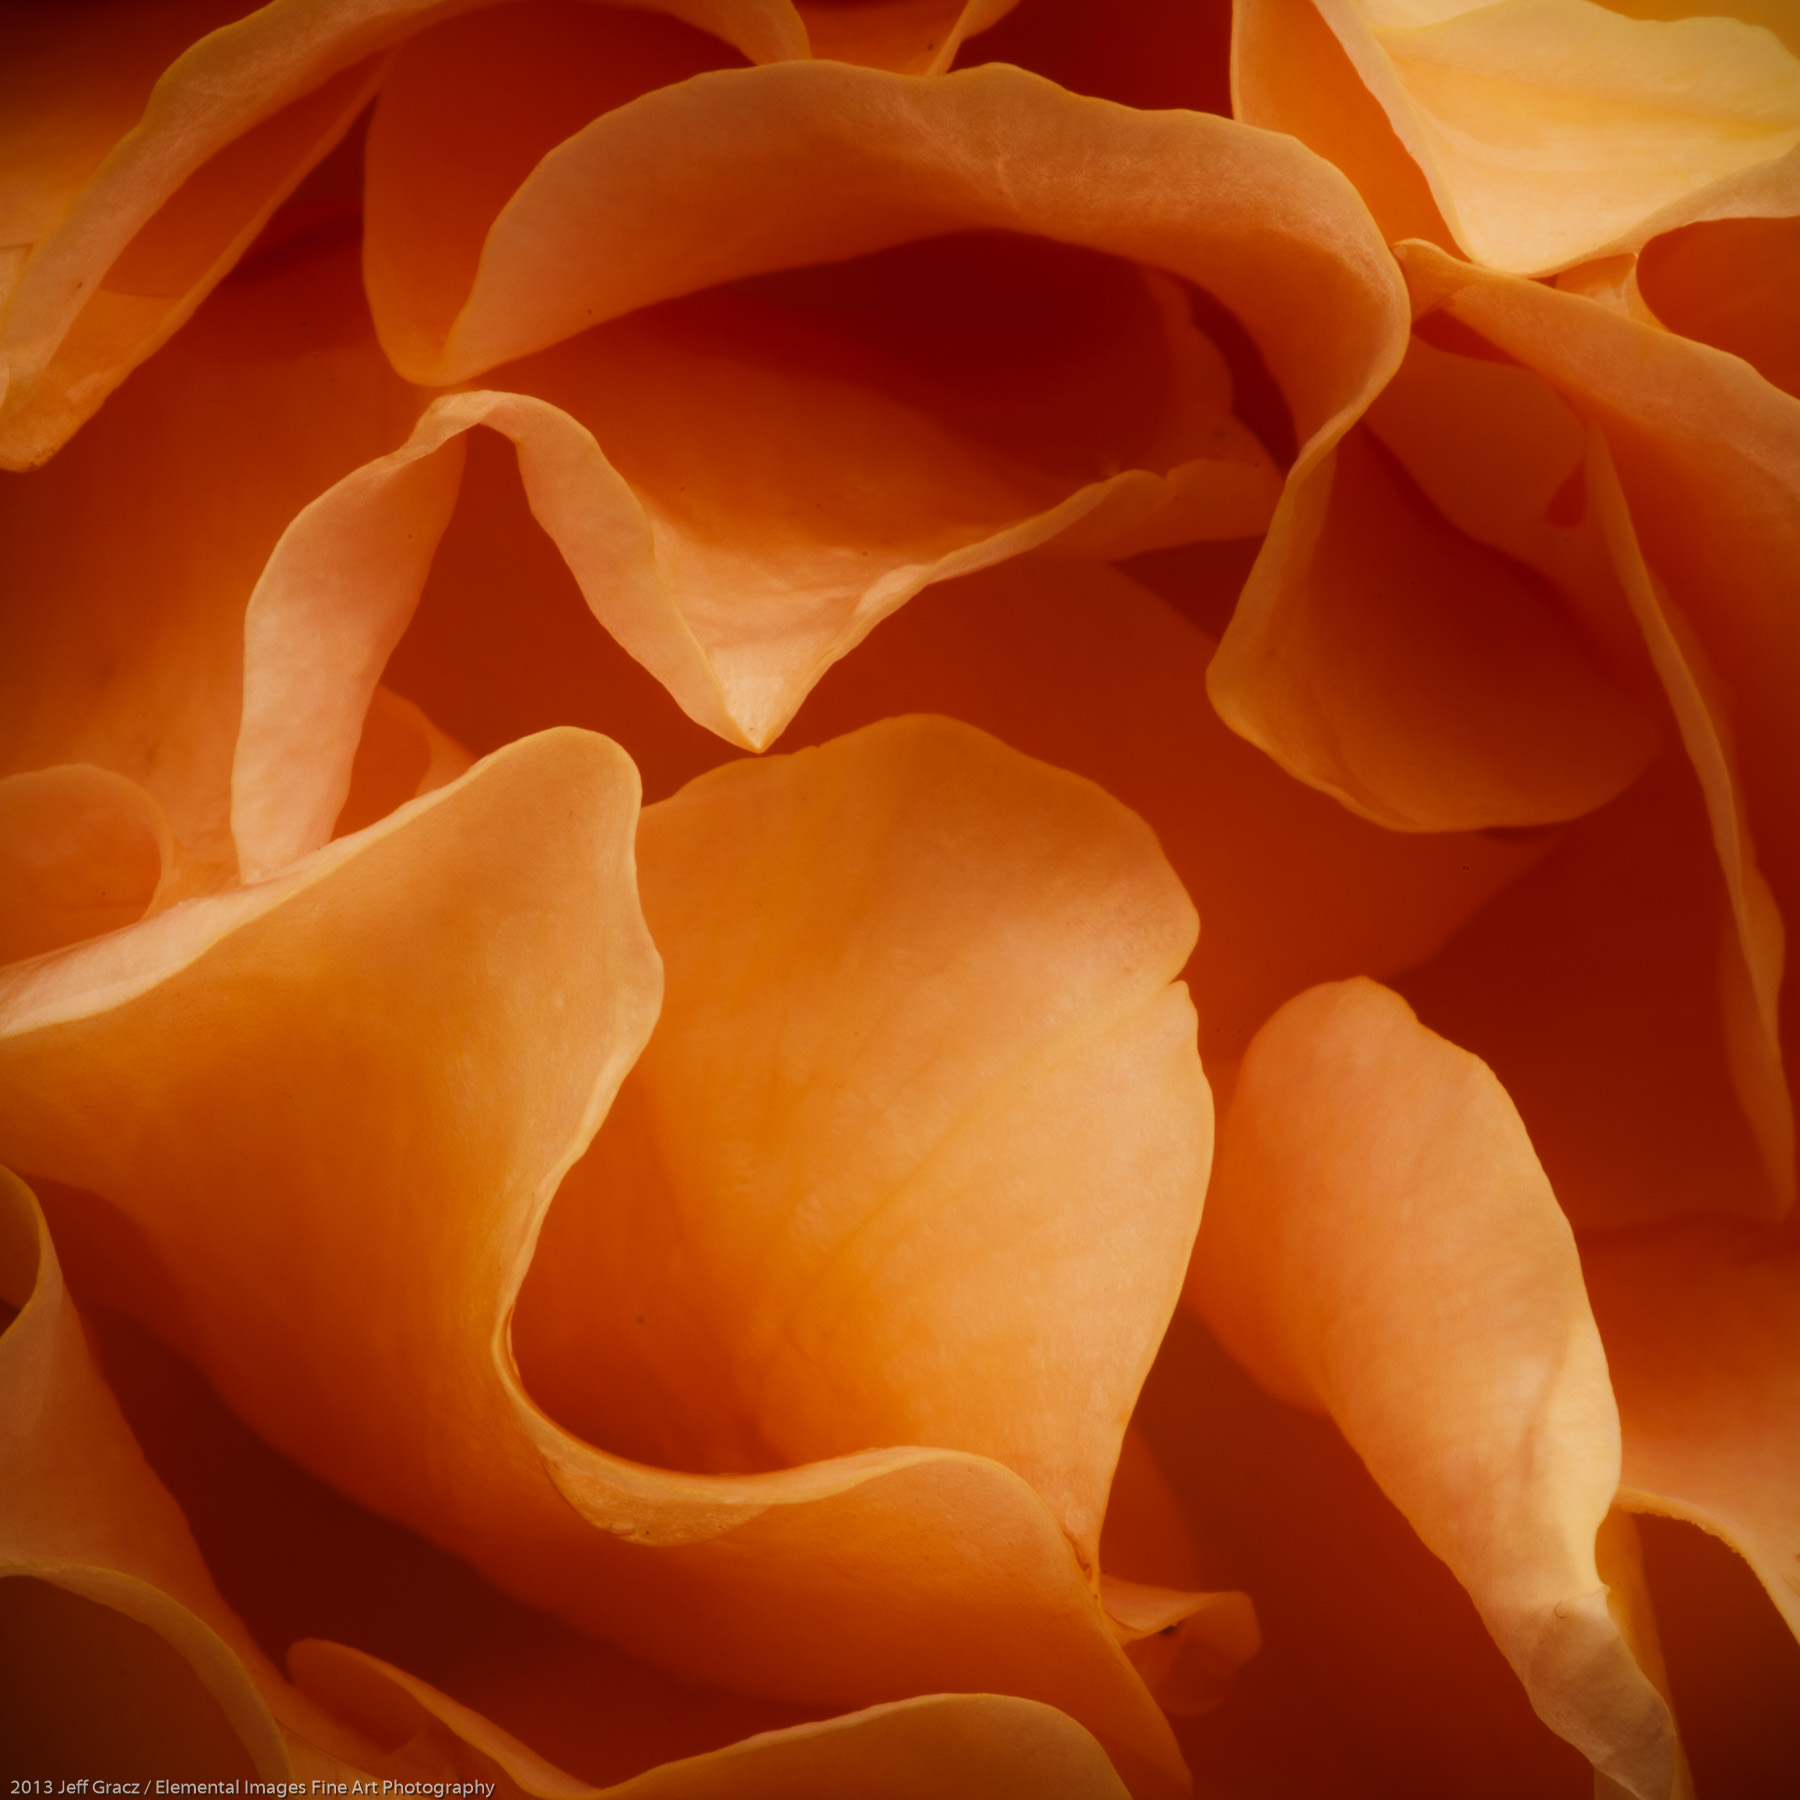 Roses XLiX   Portland   OR   USA - © 2013 Jeff Gracz / Elemental Images Fine Art Photography - All Rights Reserved Worldwide